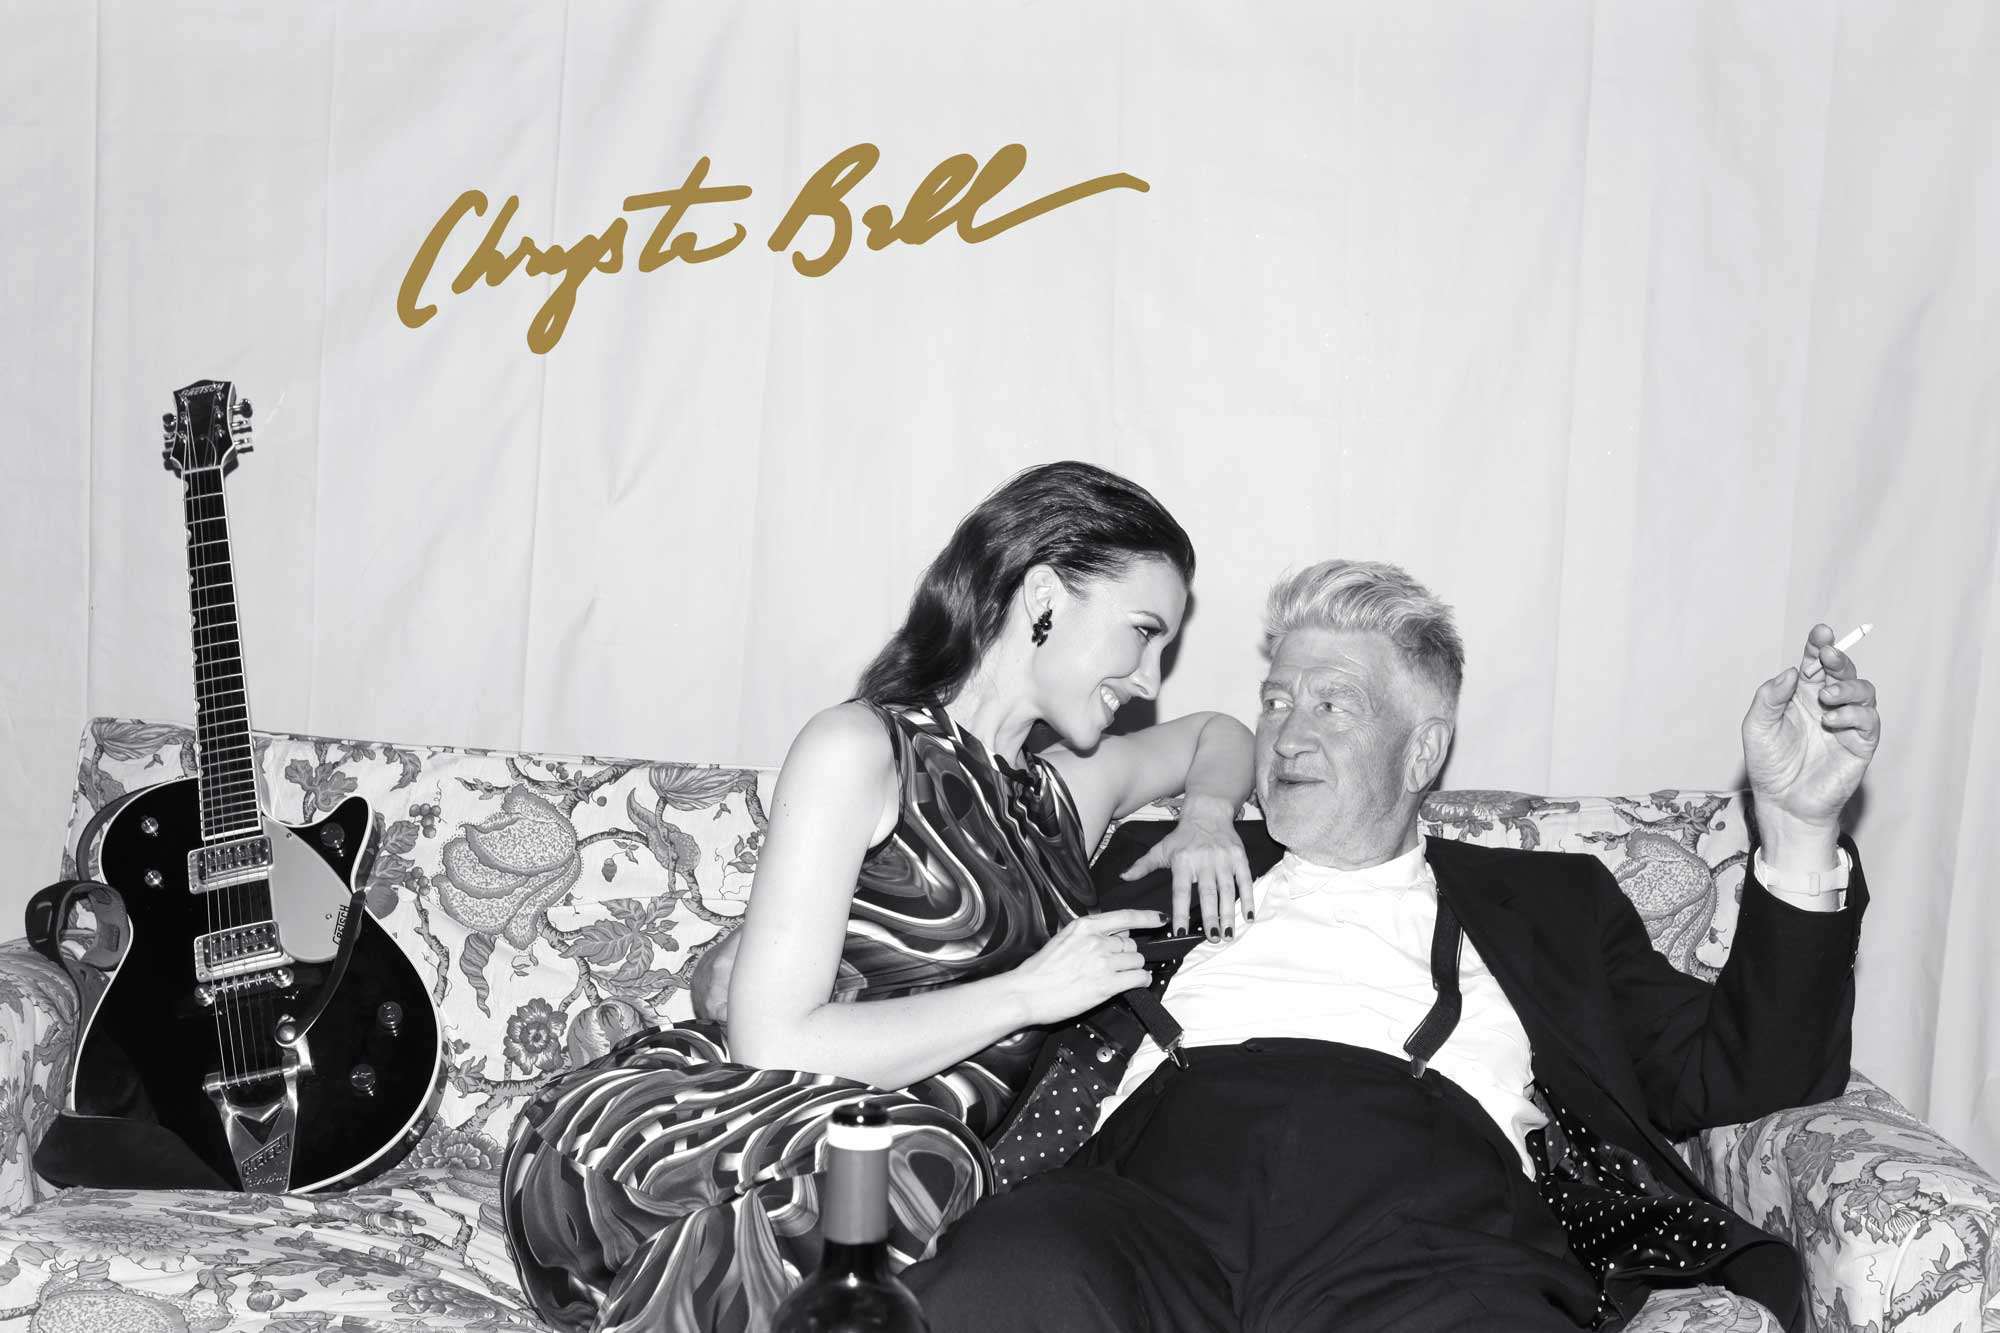 Chrysta Bell, la musa di David Lynch in concerto in Italia per due date ad aprile